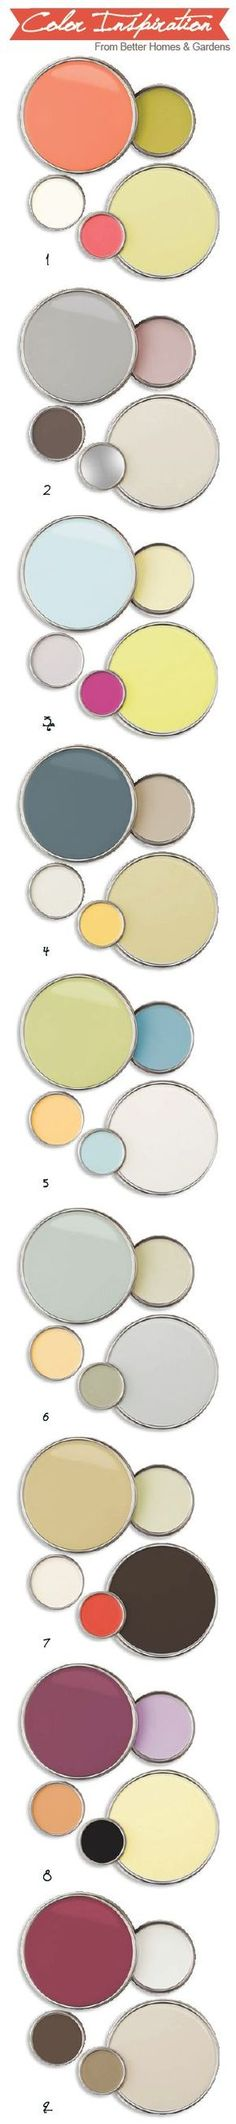 Better homes and gardens color palette inspirations. Great ideas for some unique nursery palettes.